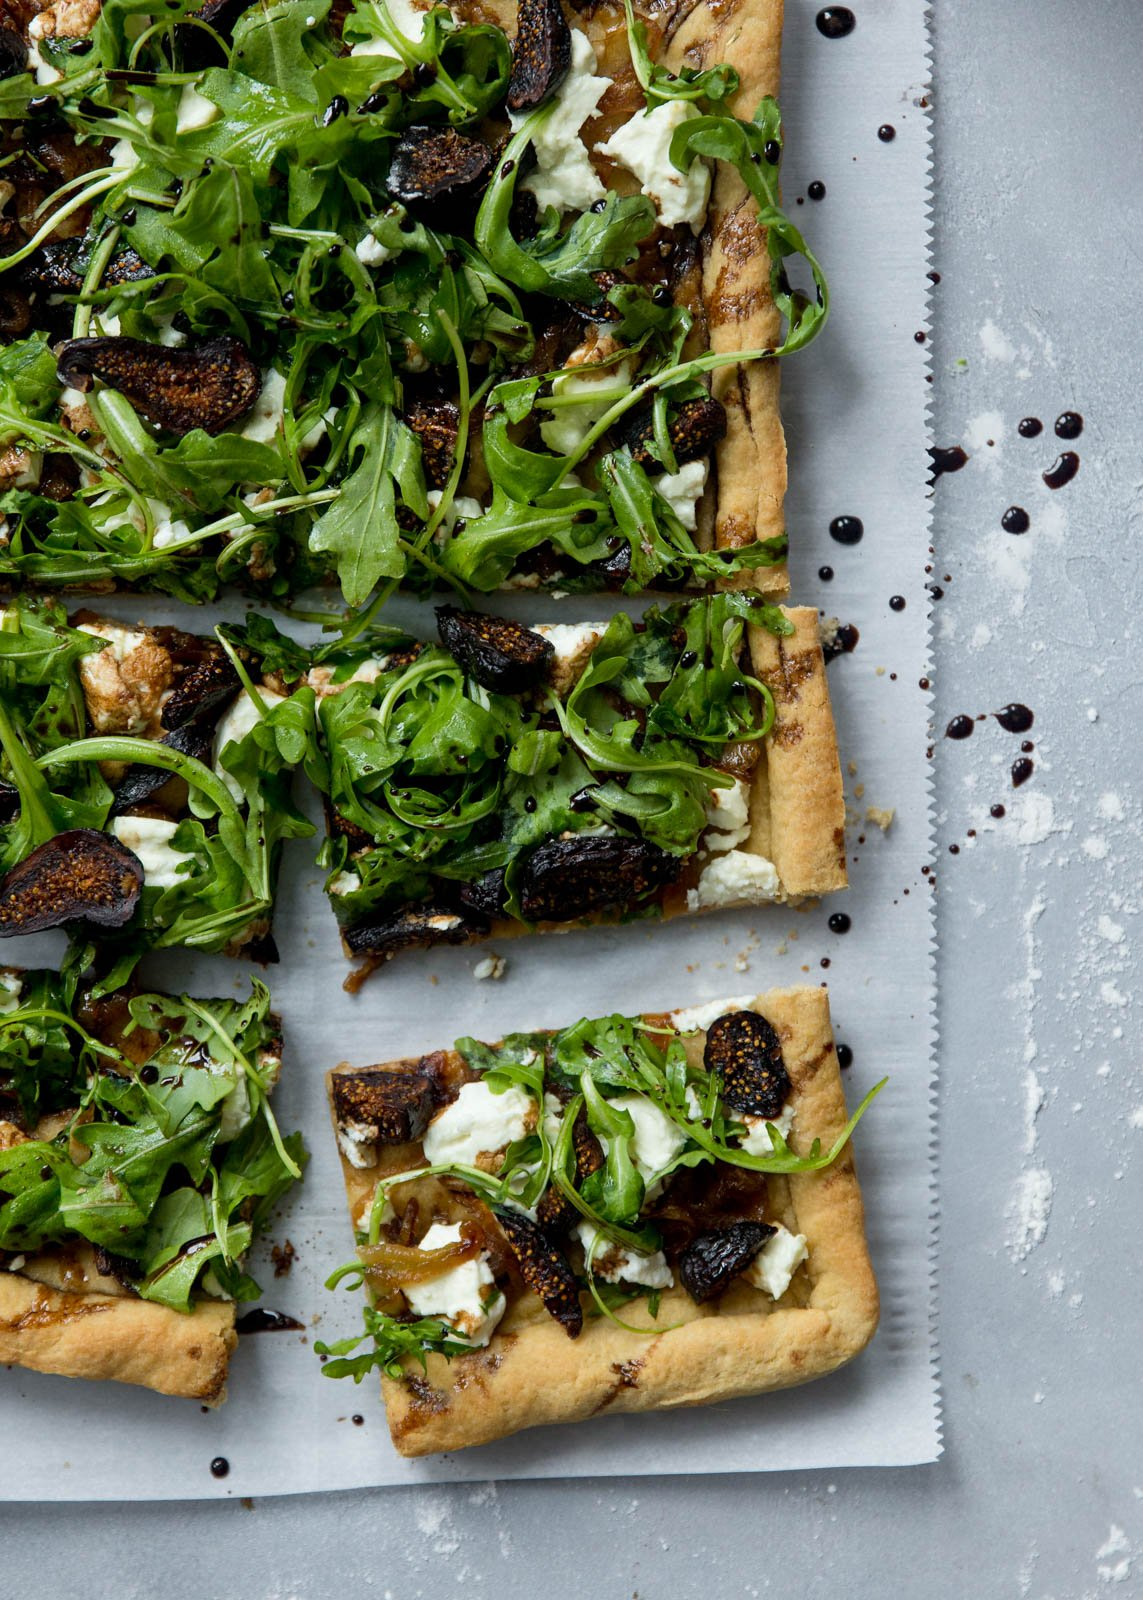 goat cheese pizza with caramelized onions, arugula and goat cheese